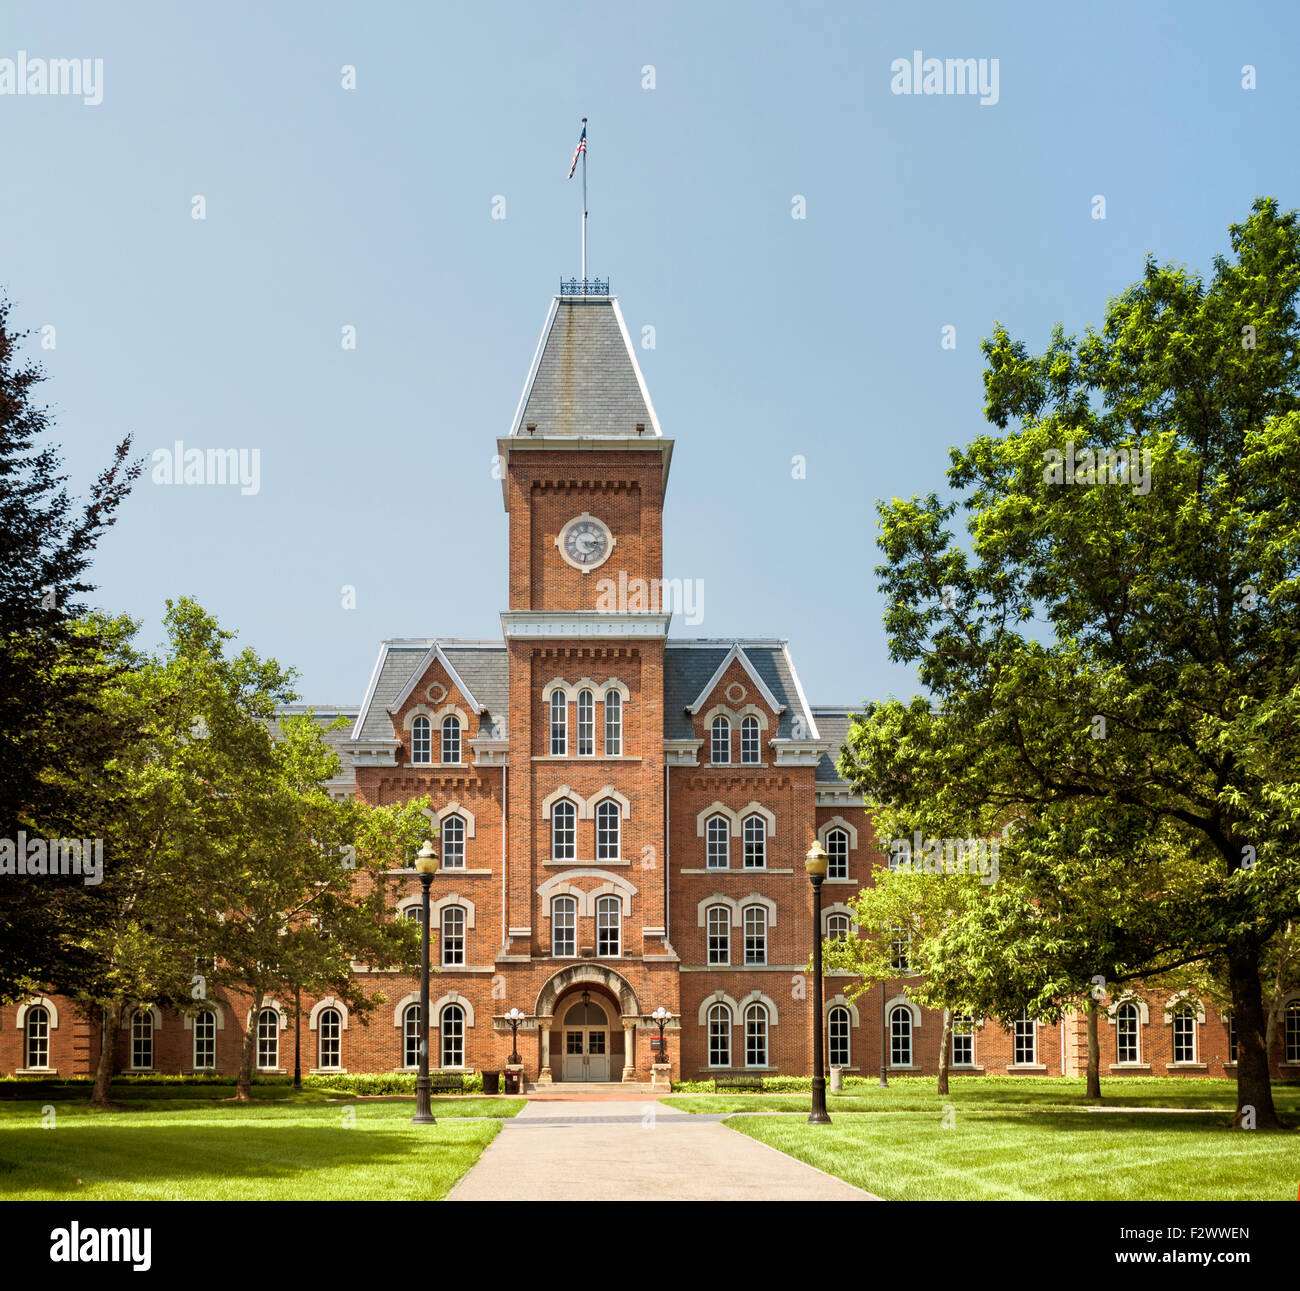 university-hall-the-ohio-state-university-columbus-ohio-with-the-american-F2WWEN.jpg